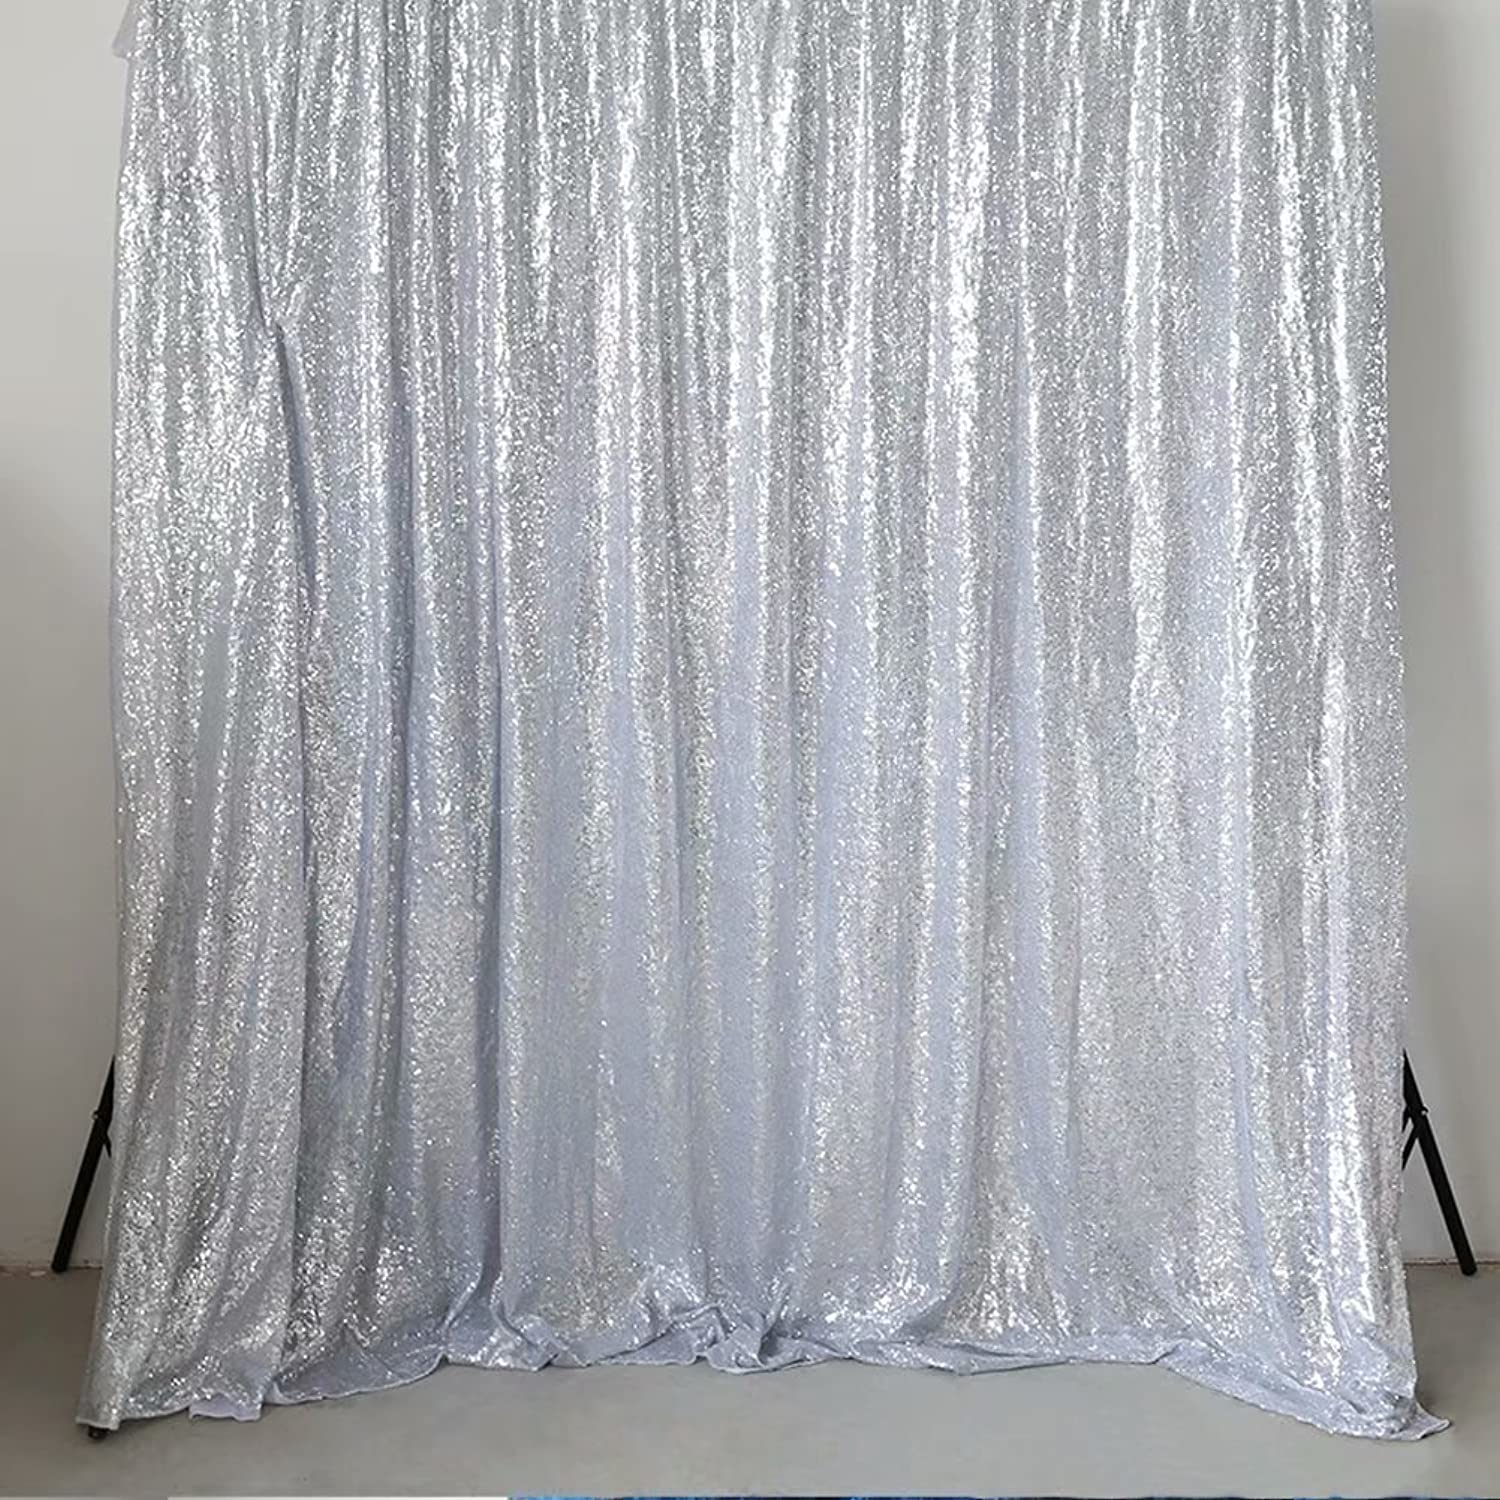 GFCC Silver 8x10ft Sequin Backdrop Wedding Party Christmas Decoration Home Favors Photo Booth Backdround